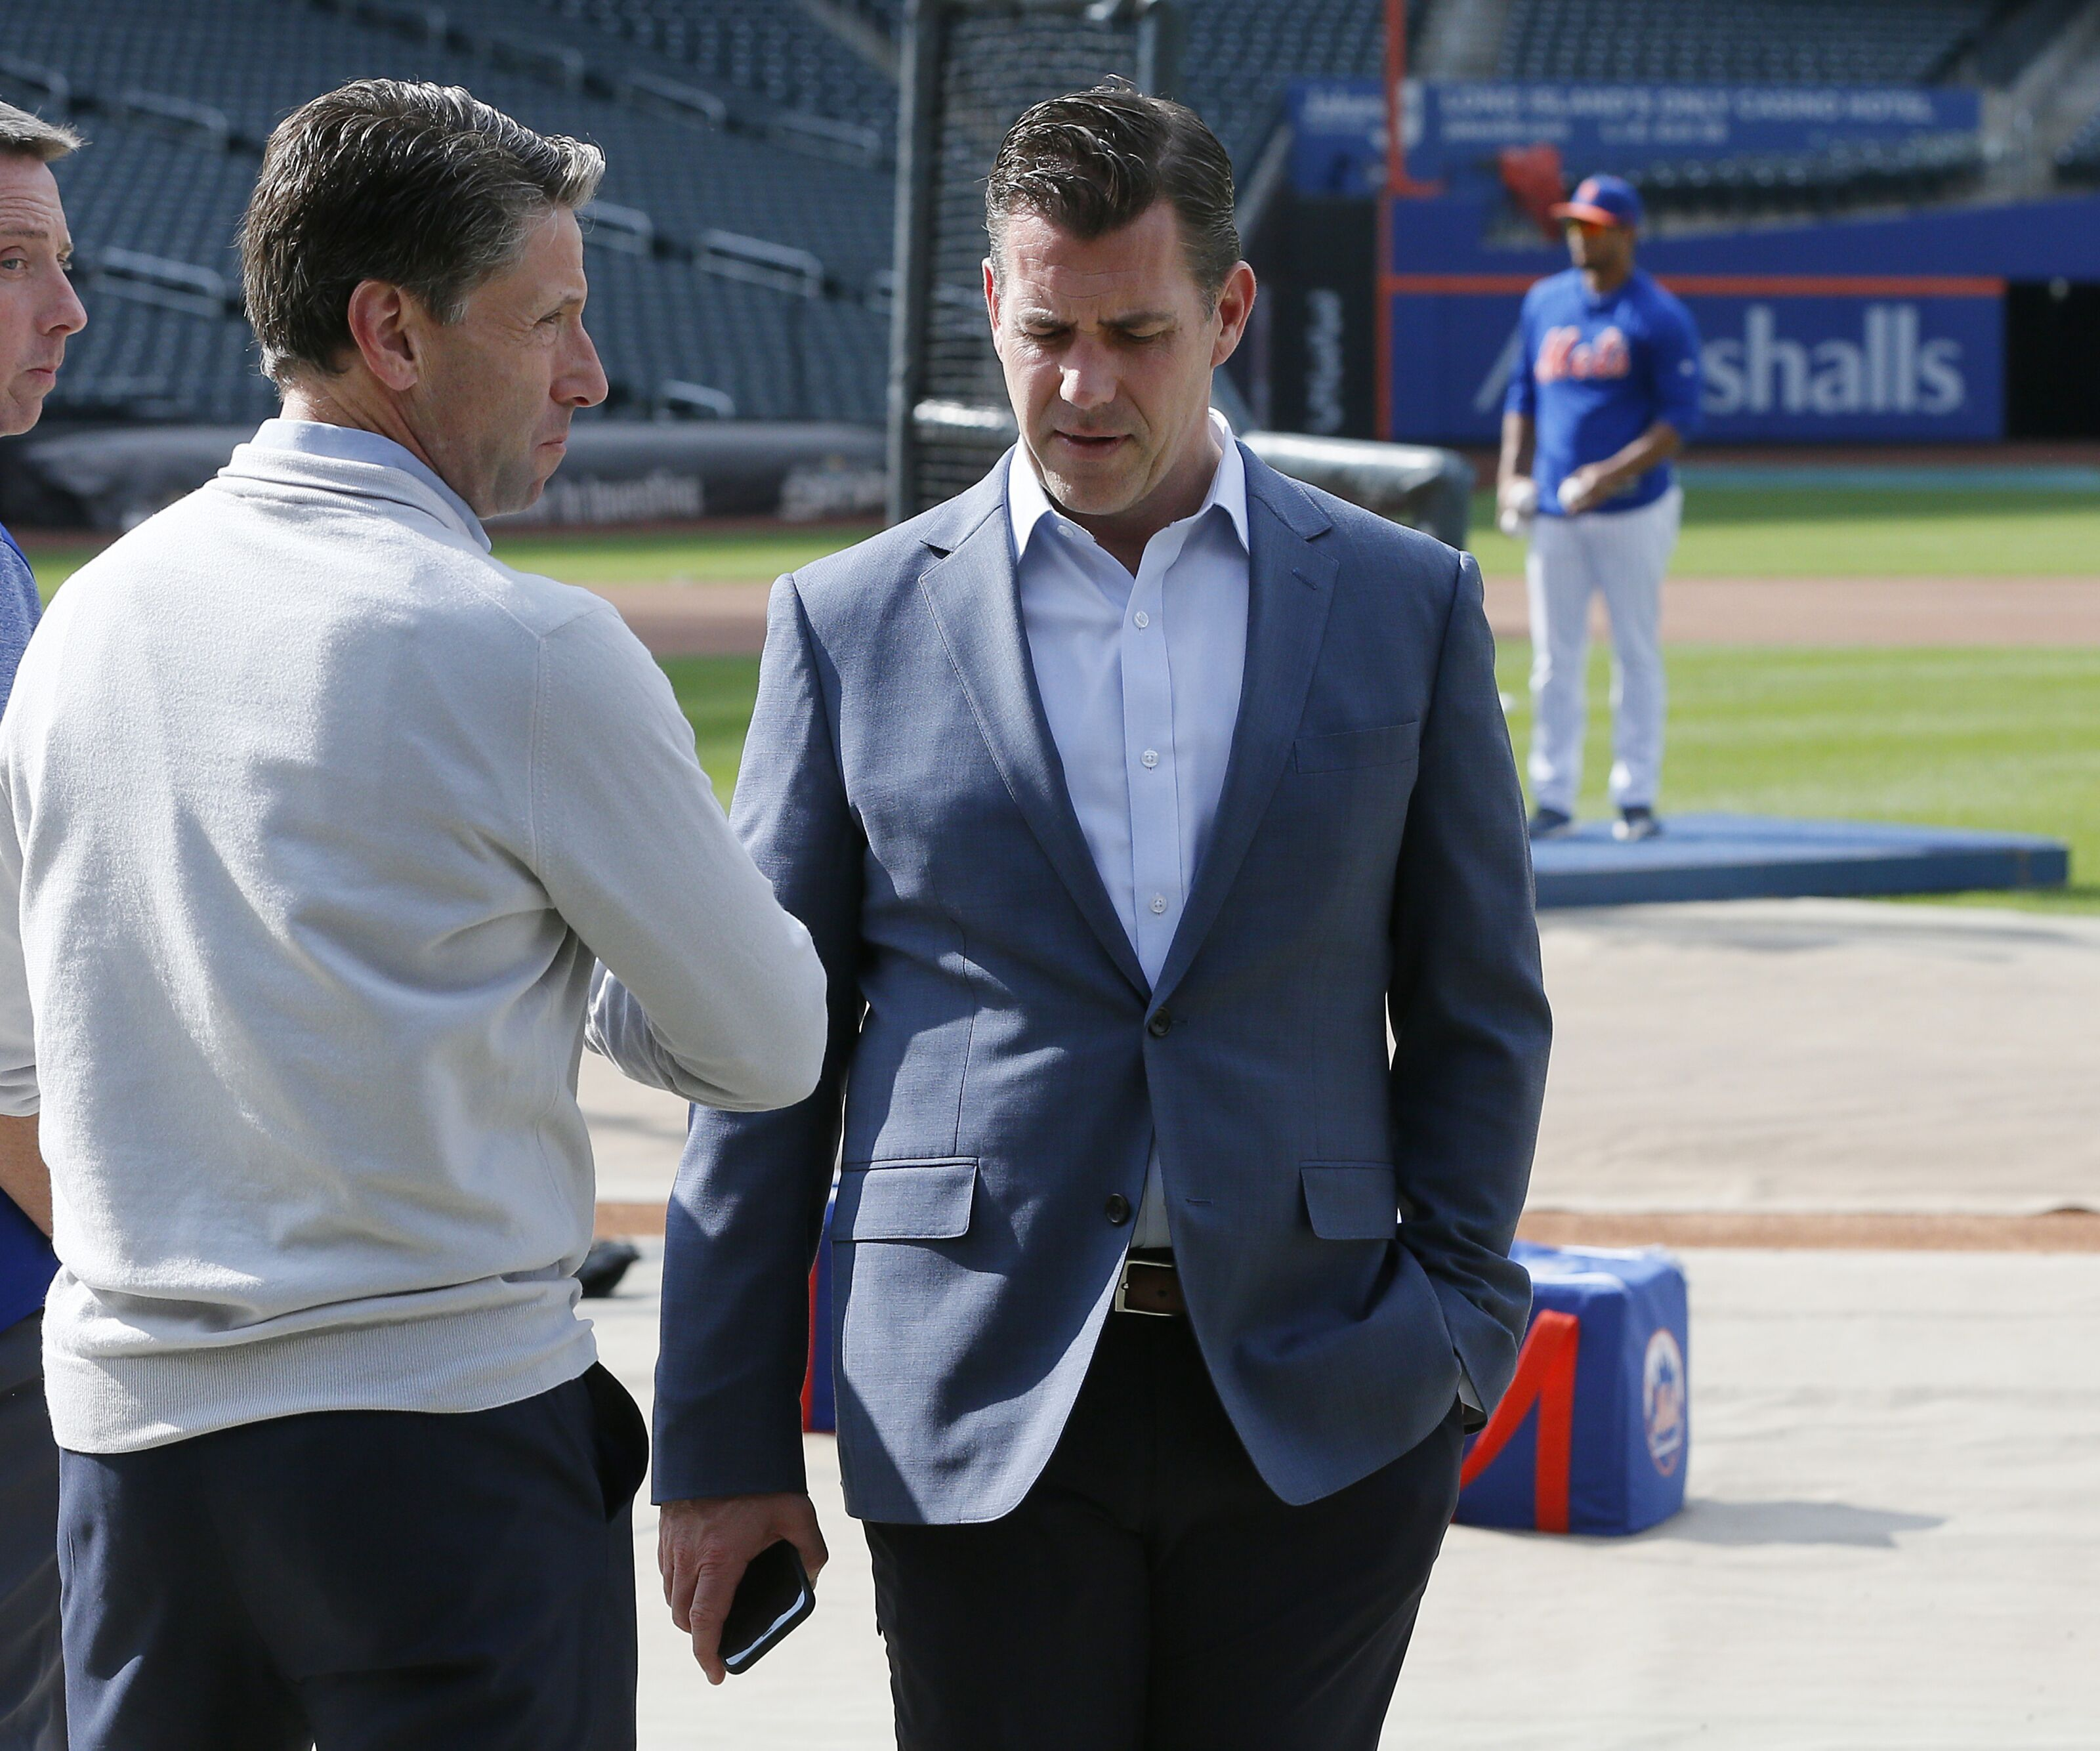 New York Mets: Who will be the next manager?